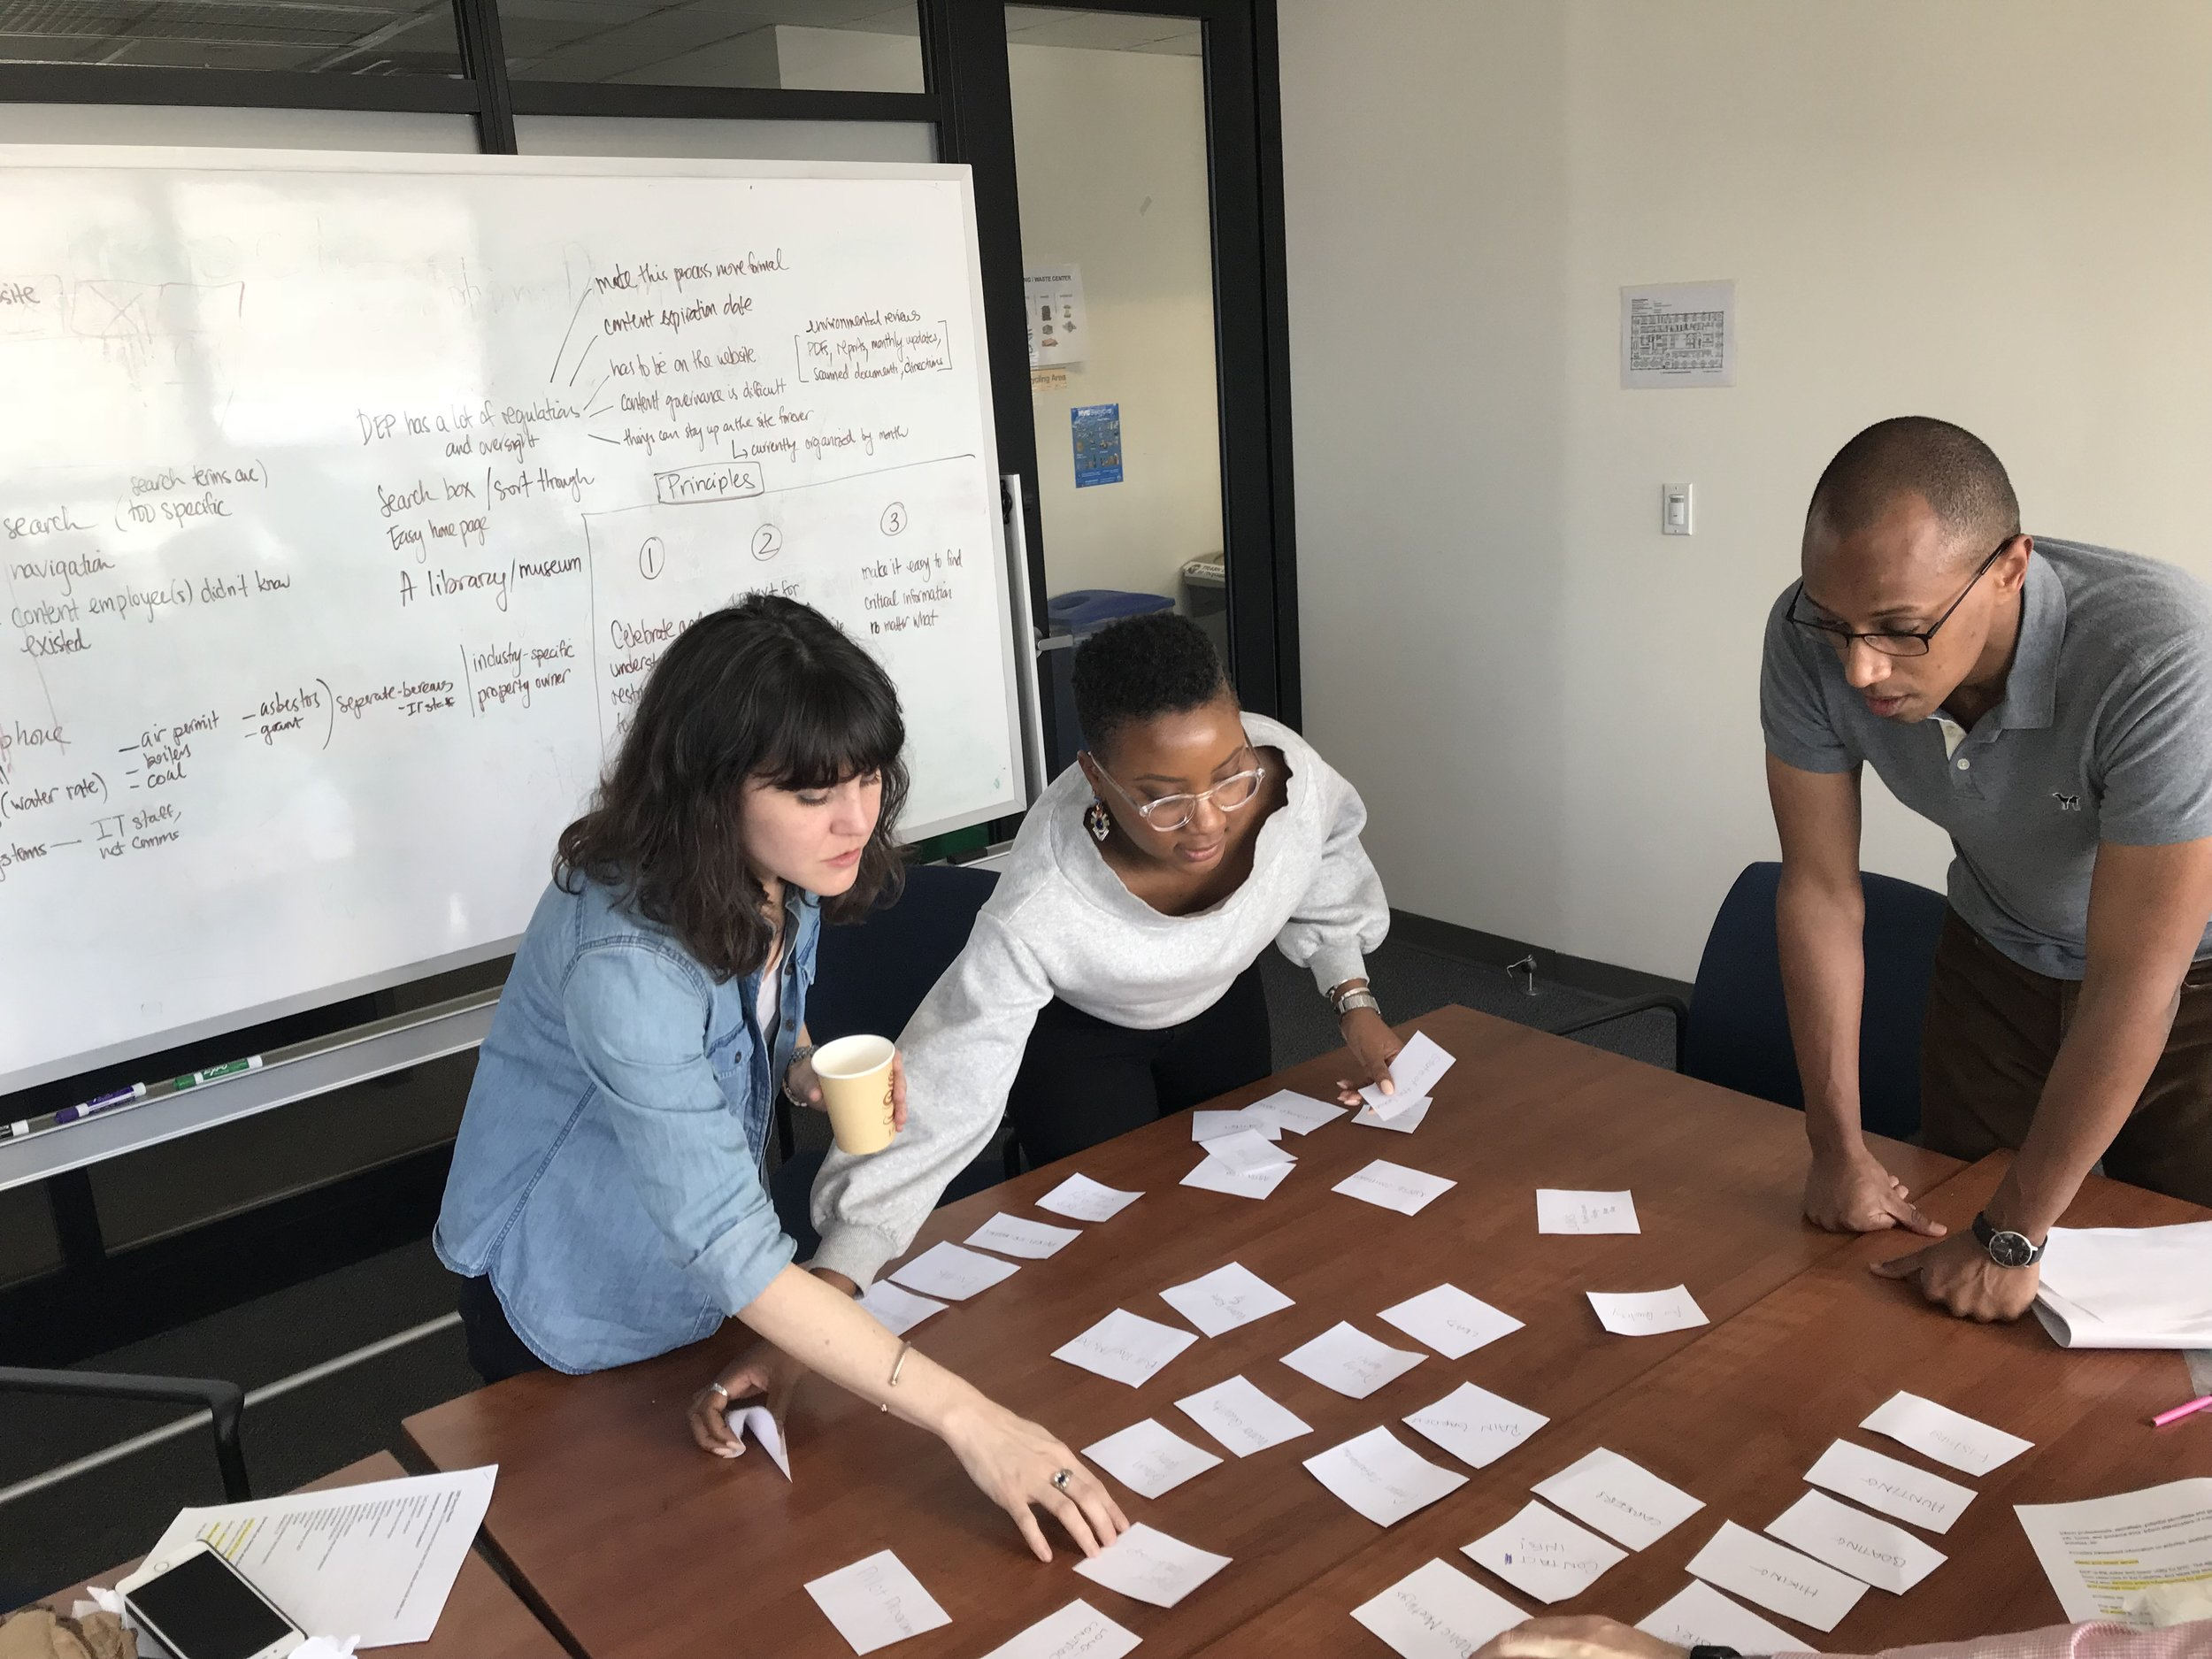 On April 18th, our team hosted a co-design session with members of DEP's digital communications team. This image shows the DEP team working on an affinity mapping exercise.